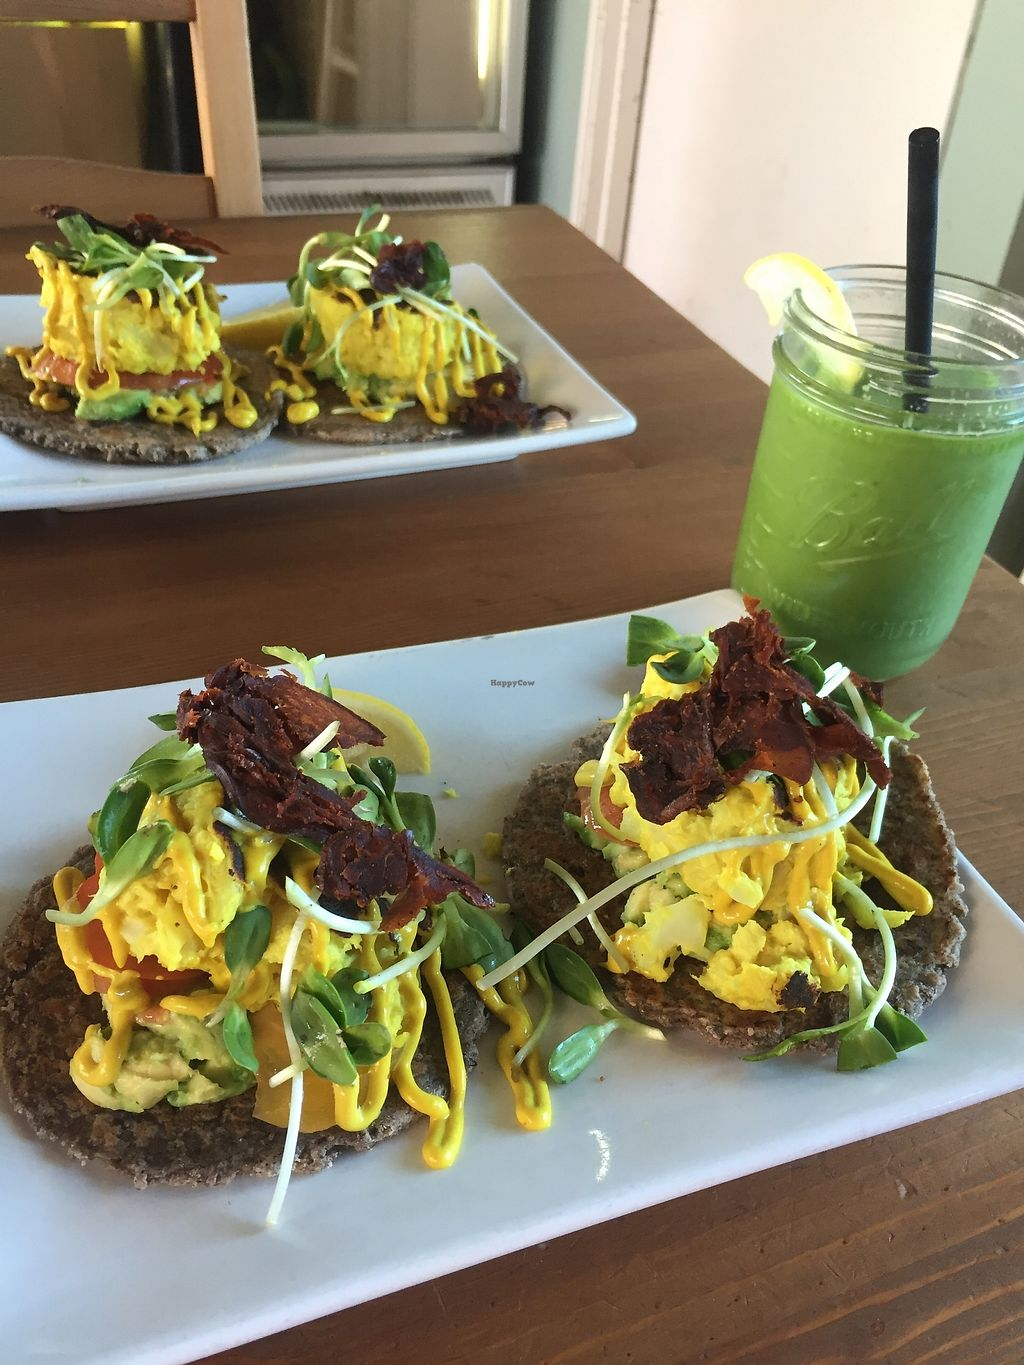 """Photo of Trilogy Sanctuary  by <a href=""""/members/profile/KaitlynnGill"""">KaitlynnGill</a> <br/>Eggz Benedict with Nature smoothie <br/> October 9, 2017  - <a href='/contact/abuse/image/50264/313627'>Report</a>"""